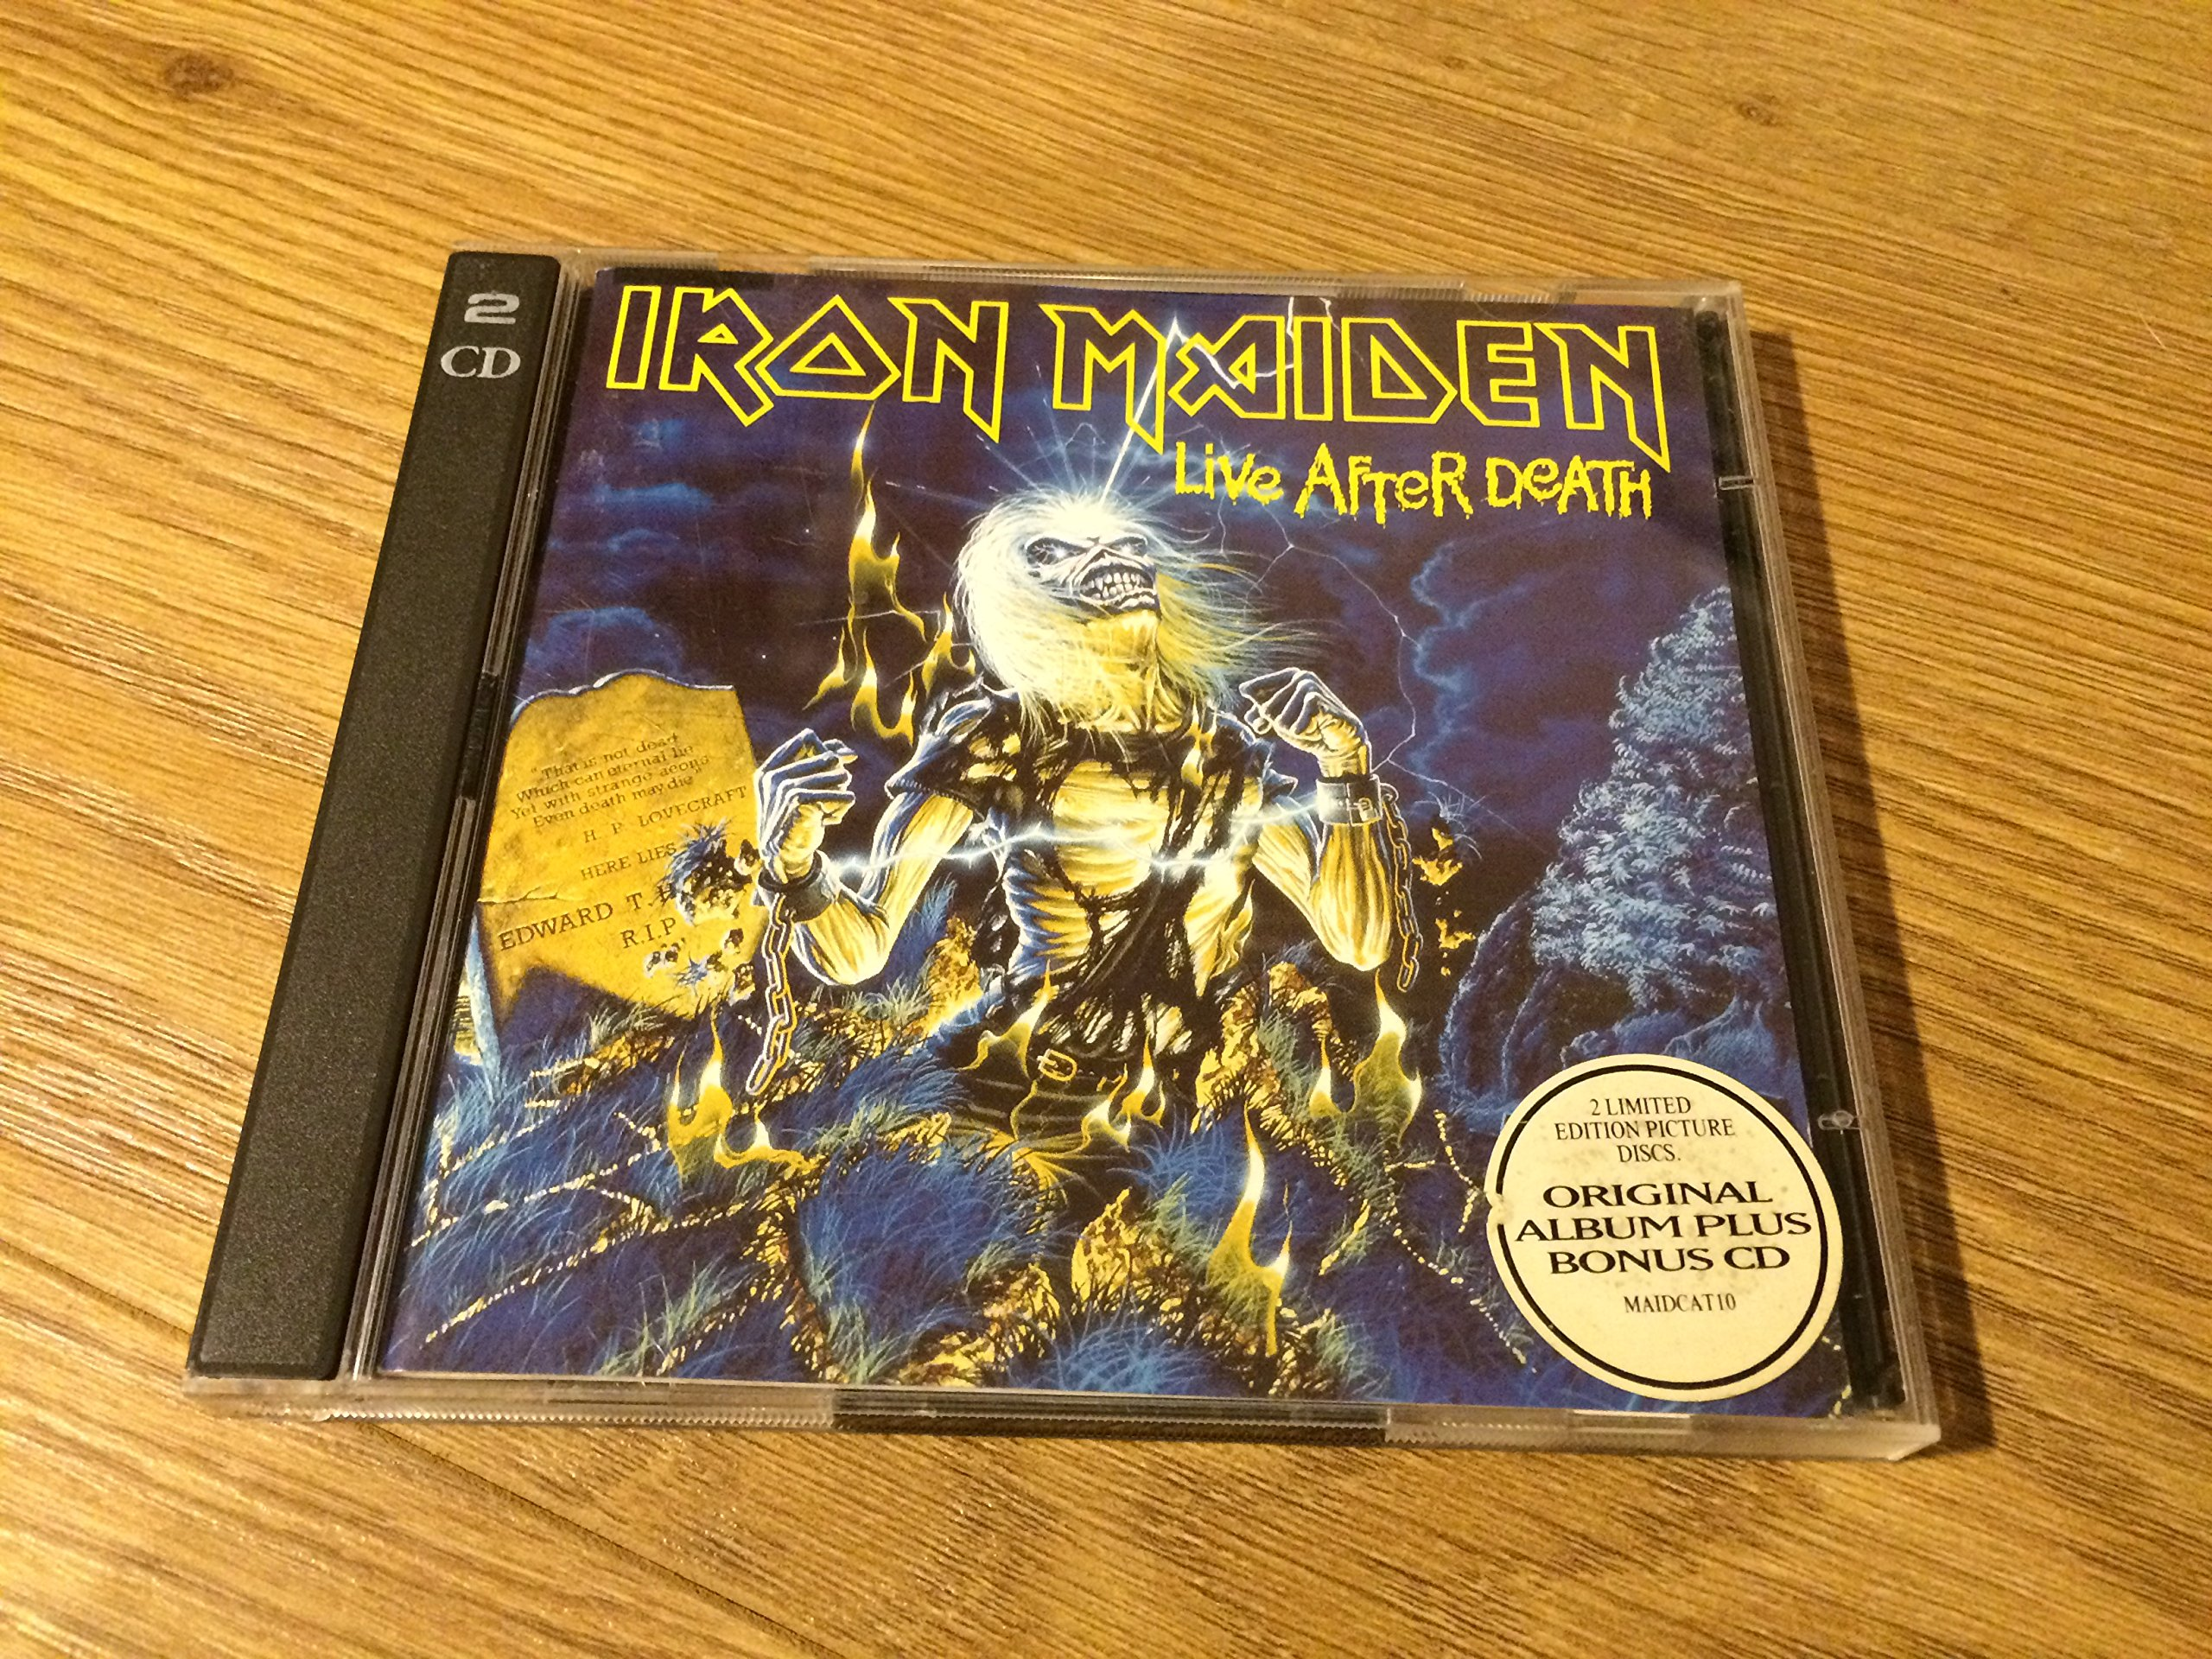 Iron Maiden-Live After Death-(724383587322)-REPACK-LIMITED EDITION-2CD-FLAC-1995-WRE Download